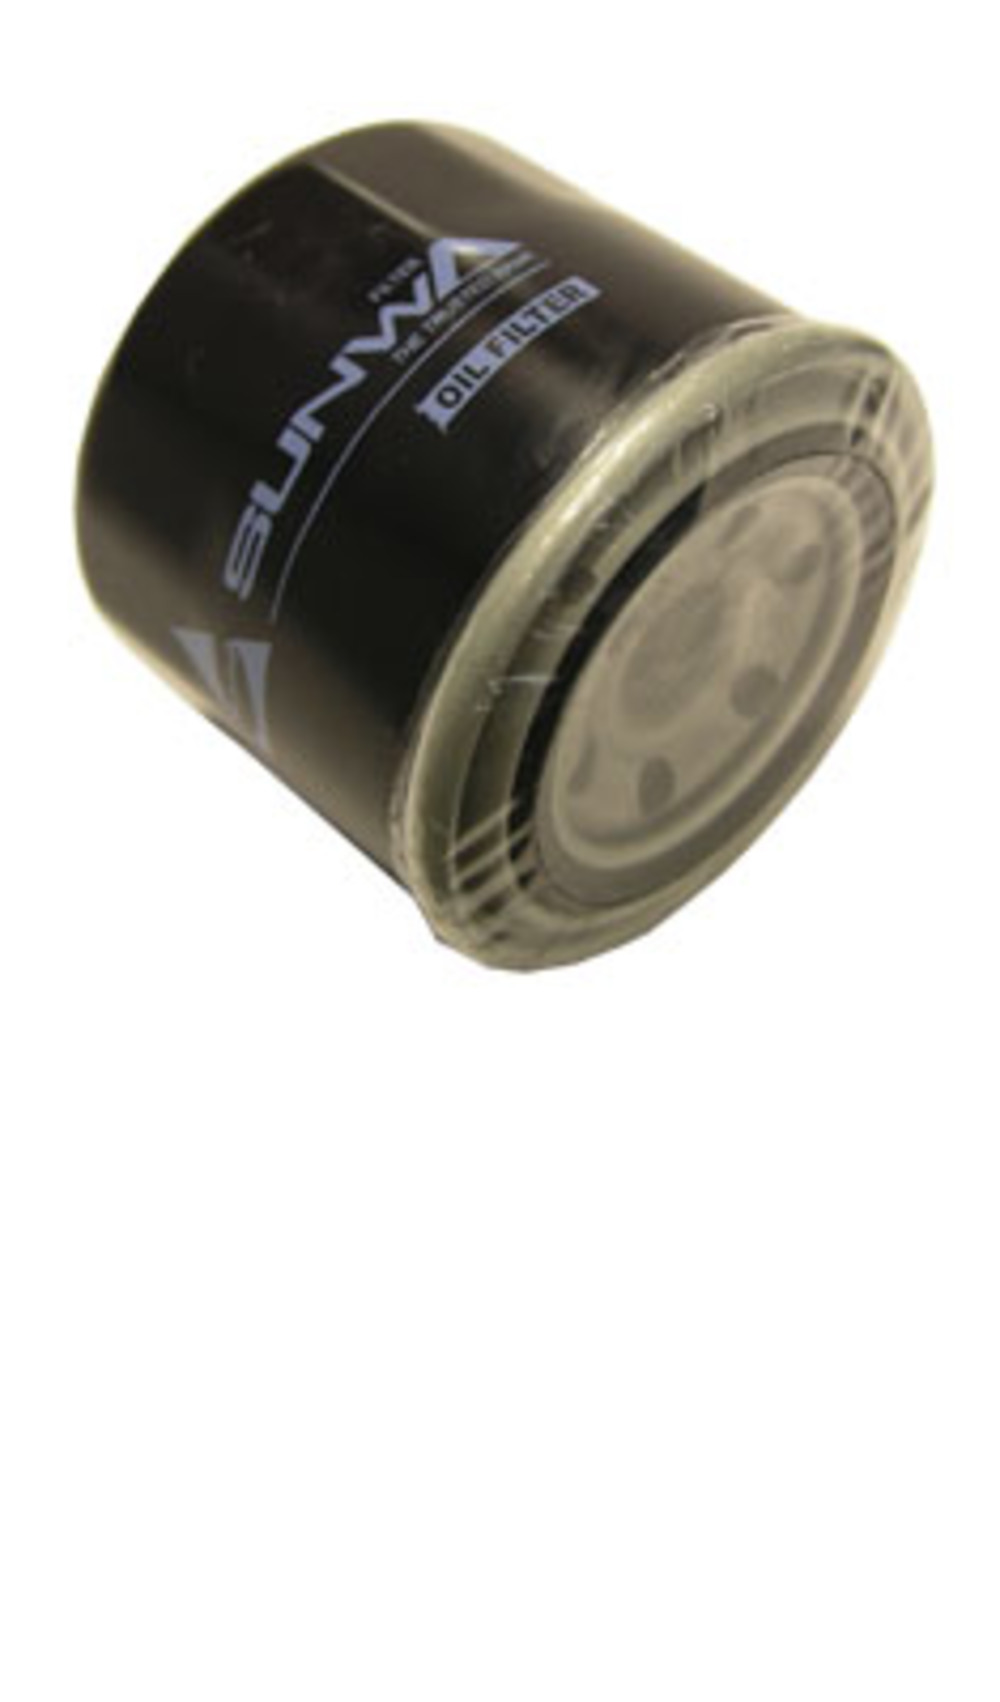 HI-FLO 153 OIL FILTER DUCATI/CAGIVA 89420091A